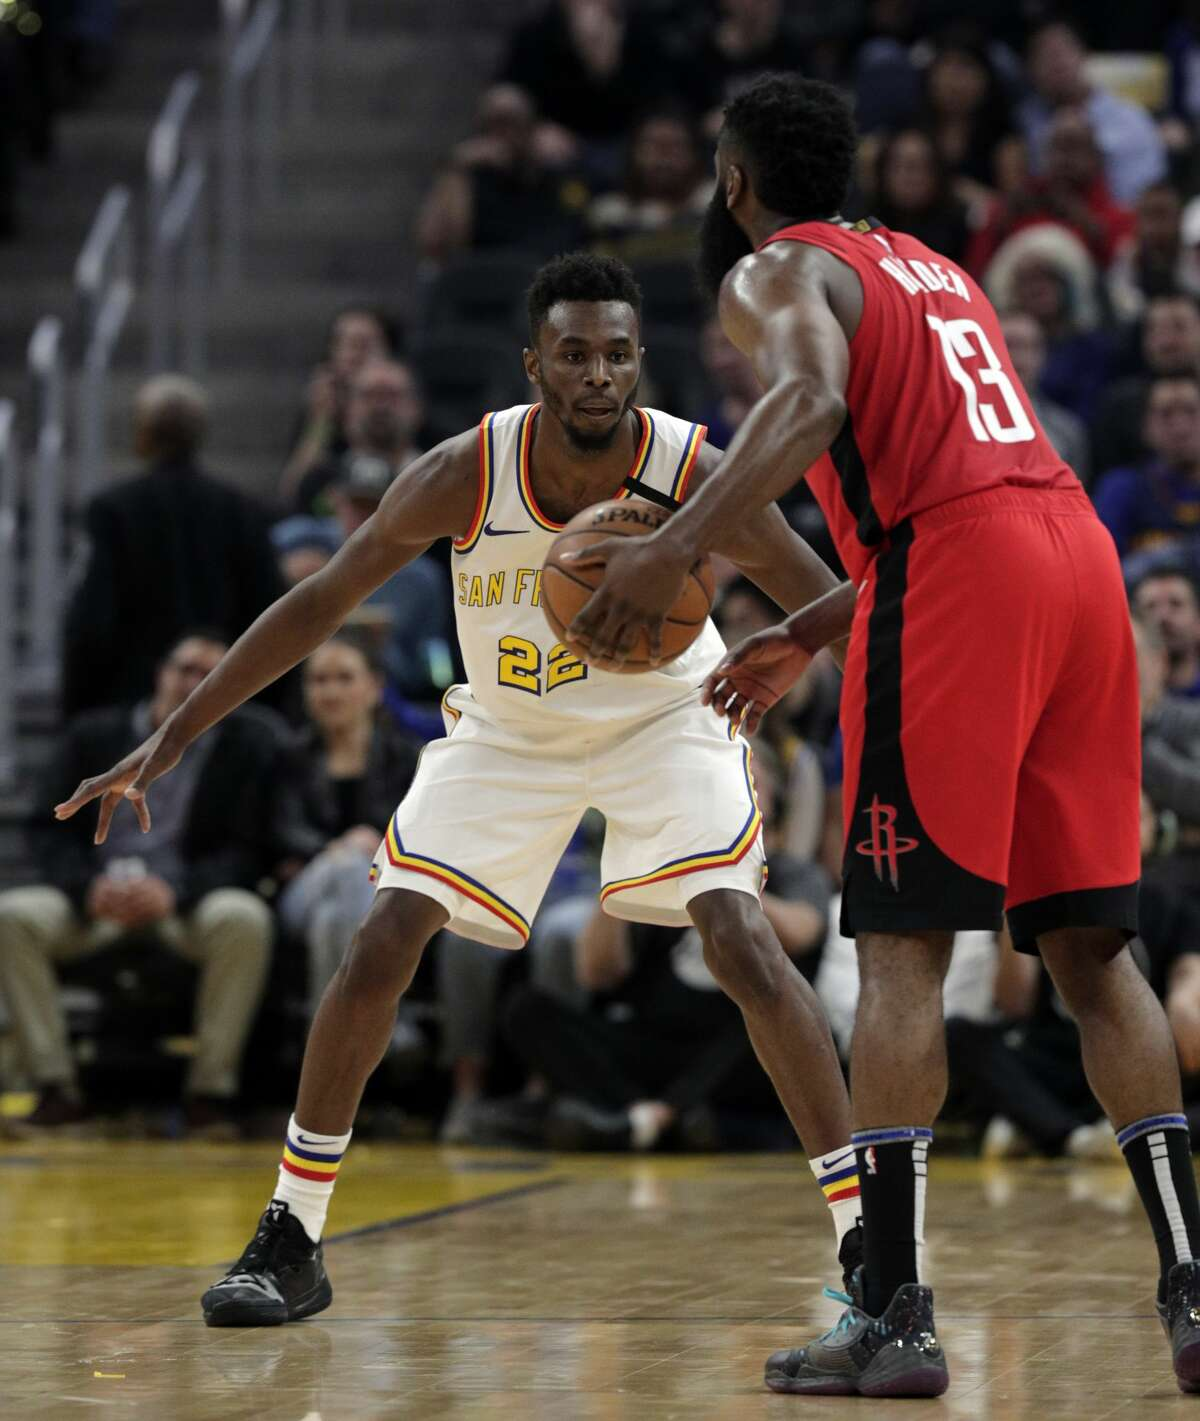 Andrew Wiggins (22) defends against James Harden (13) In the first half as the Golden State Warriors played the Houston Rockets at Chase Center in San Francisco, Calif., on Thursday, February 20, 2020.